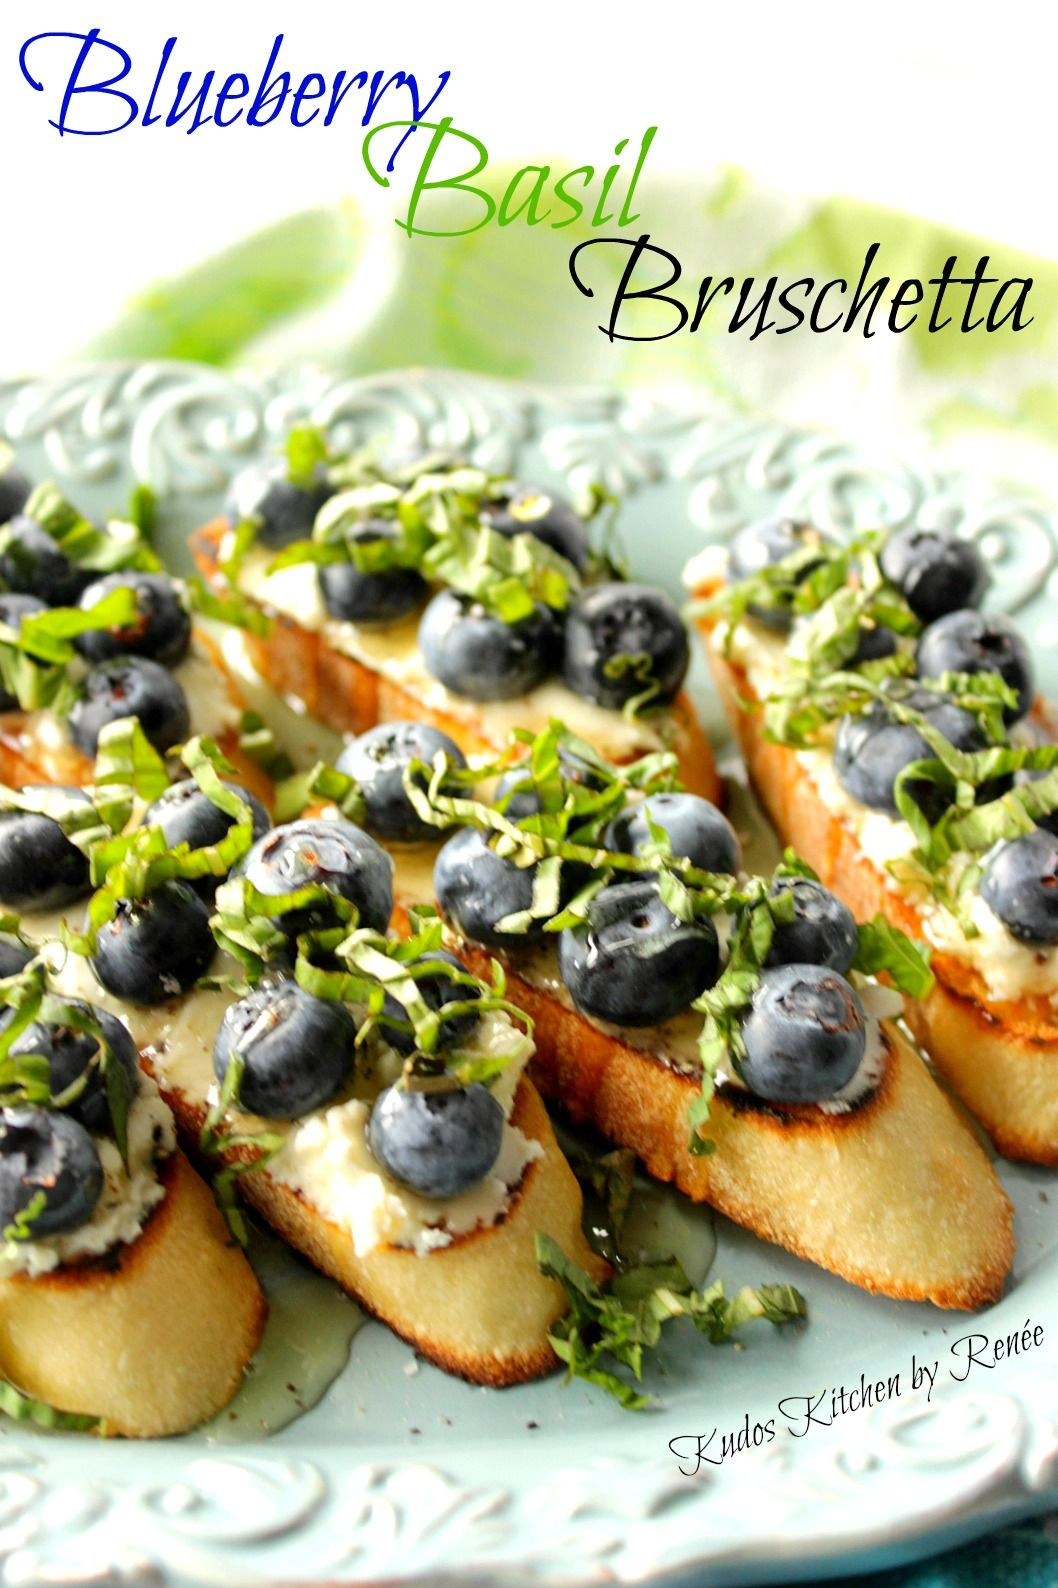 If you have 10 minutes and only 5 ingredients, you can serve delicious Blueberry Basil Bruschetta and to your friends and family and blow them all away! - Kudos Kitchen by Renee